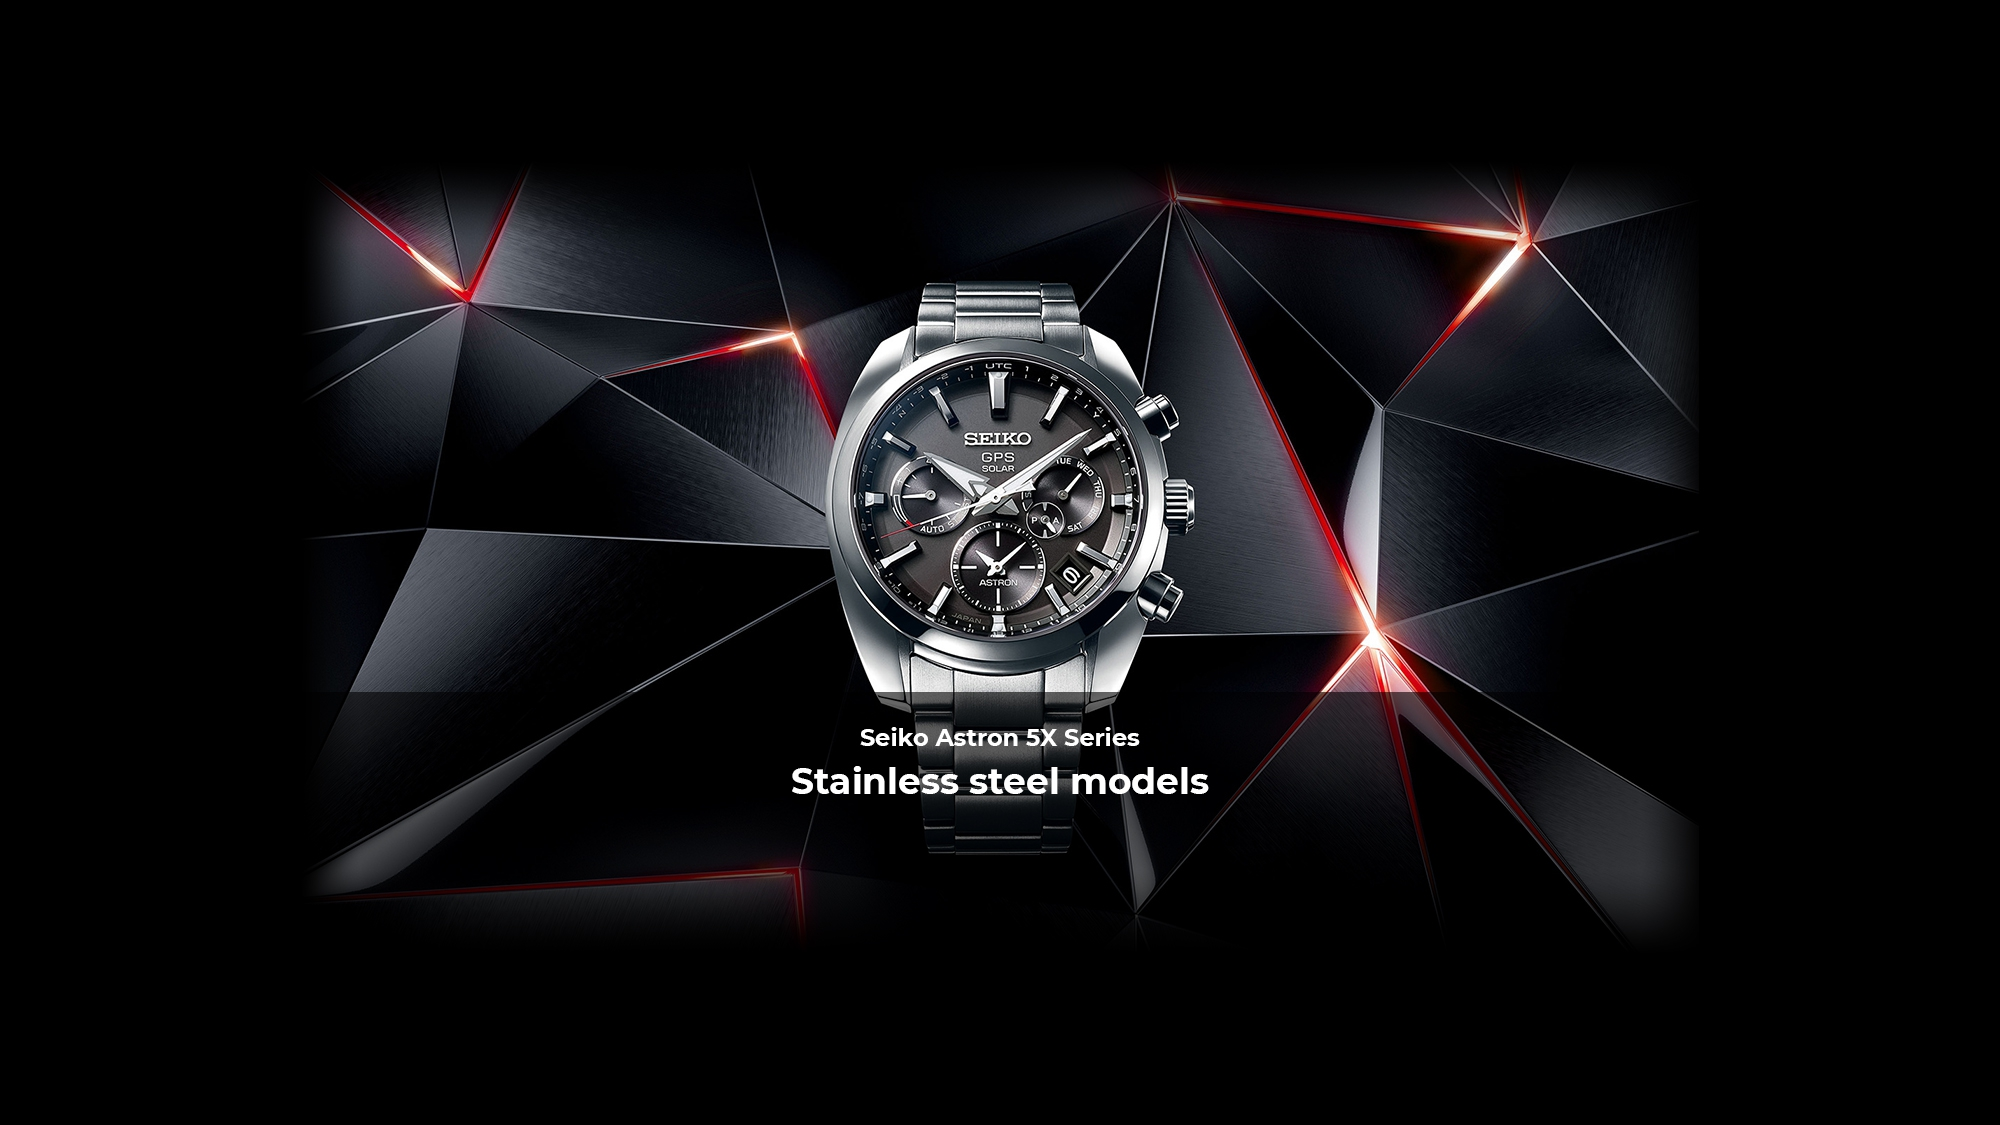 Seiko Astron 5X Series Stainless steel models